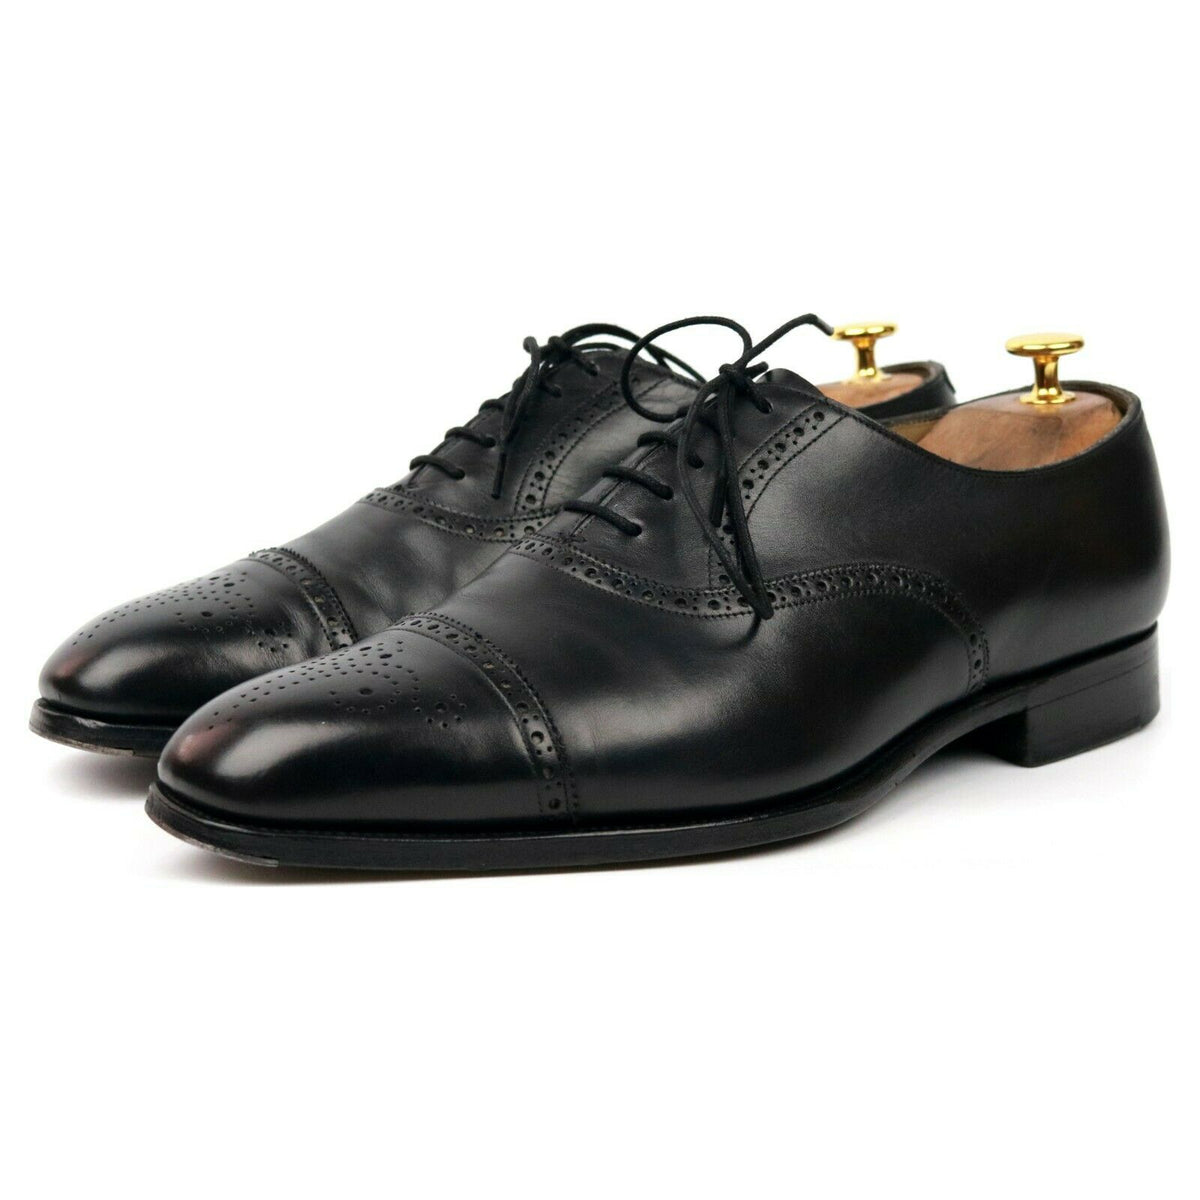 Edward Green 'Asquith' Black Leather Oxford Semi Brogues UK 9 E